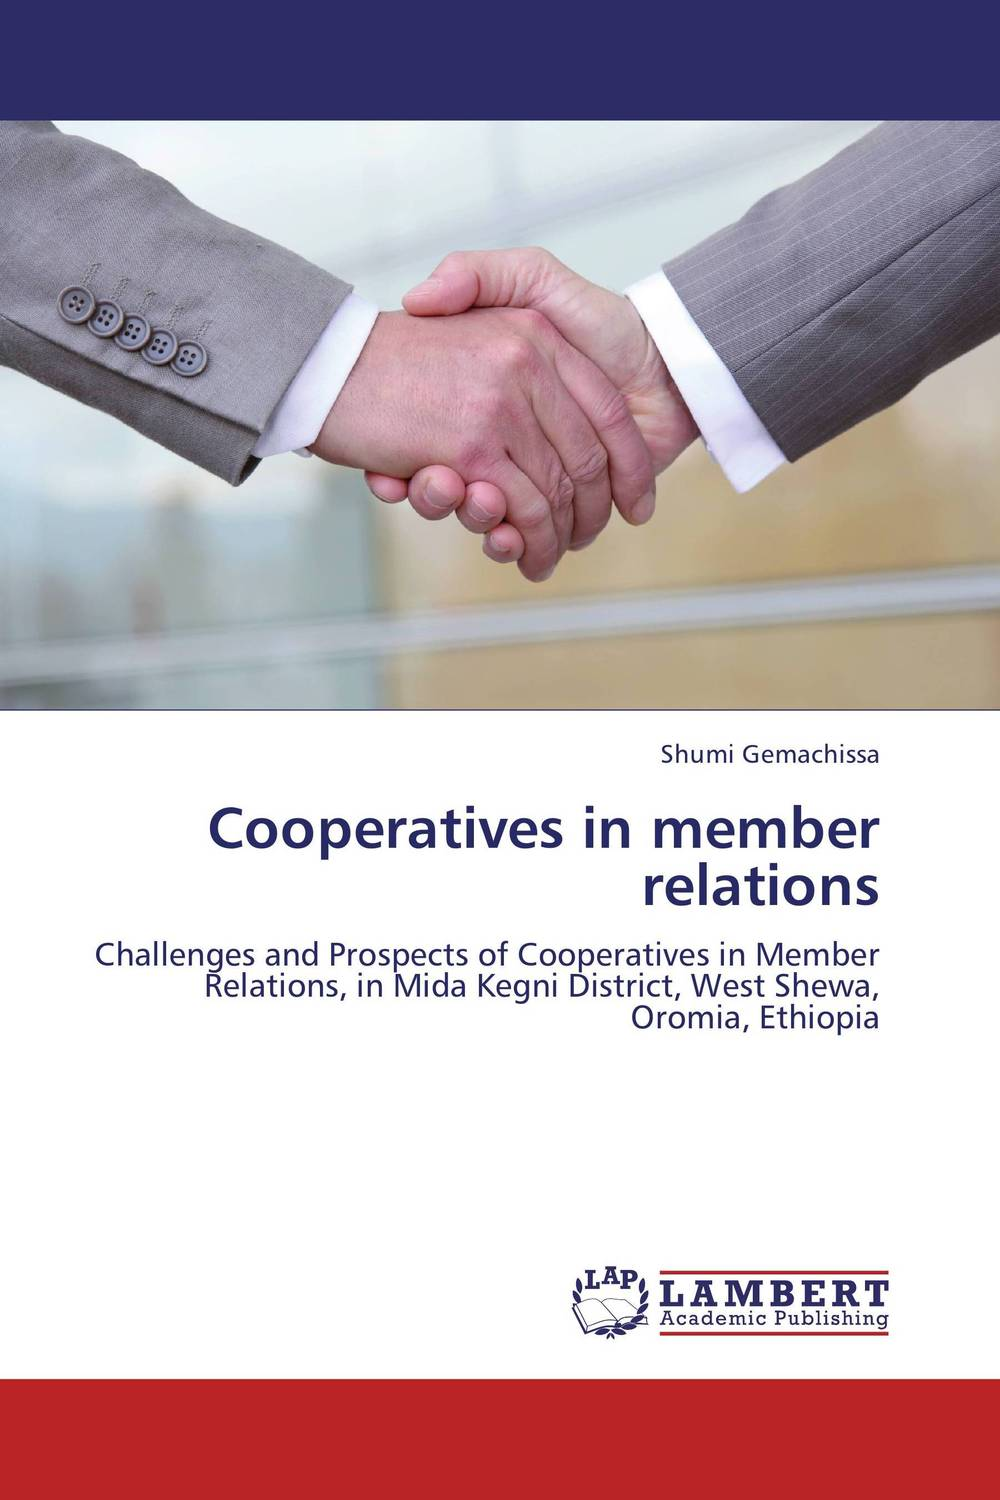 Фото Cooperatives in member relations cervical cancer in amhara region in ethiopia